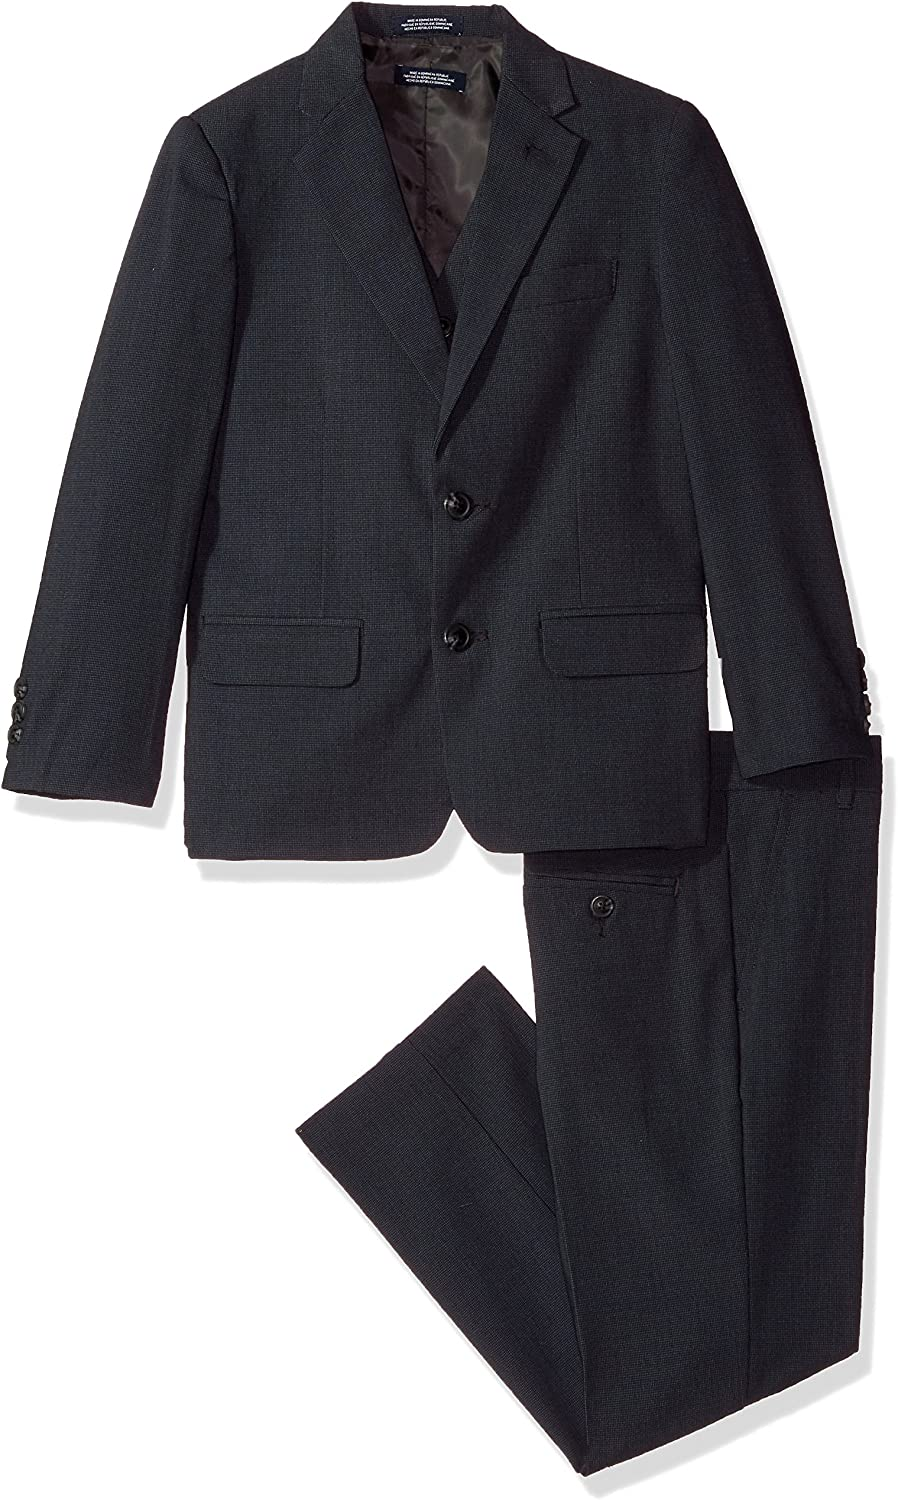 and Vest Nautica Three Piece Suit with Jacket Pant